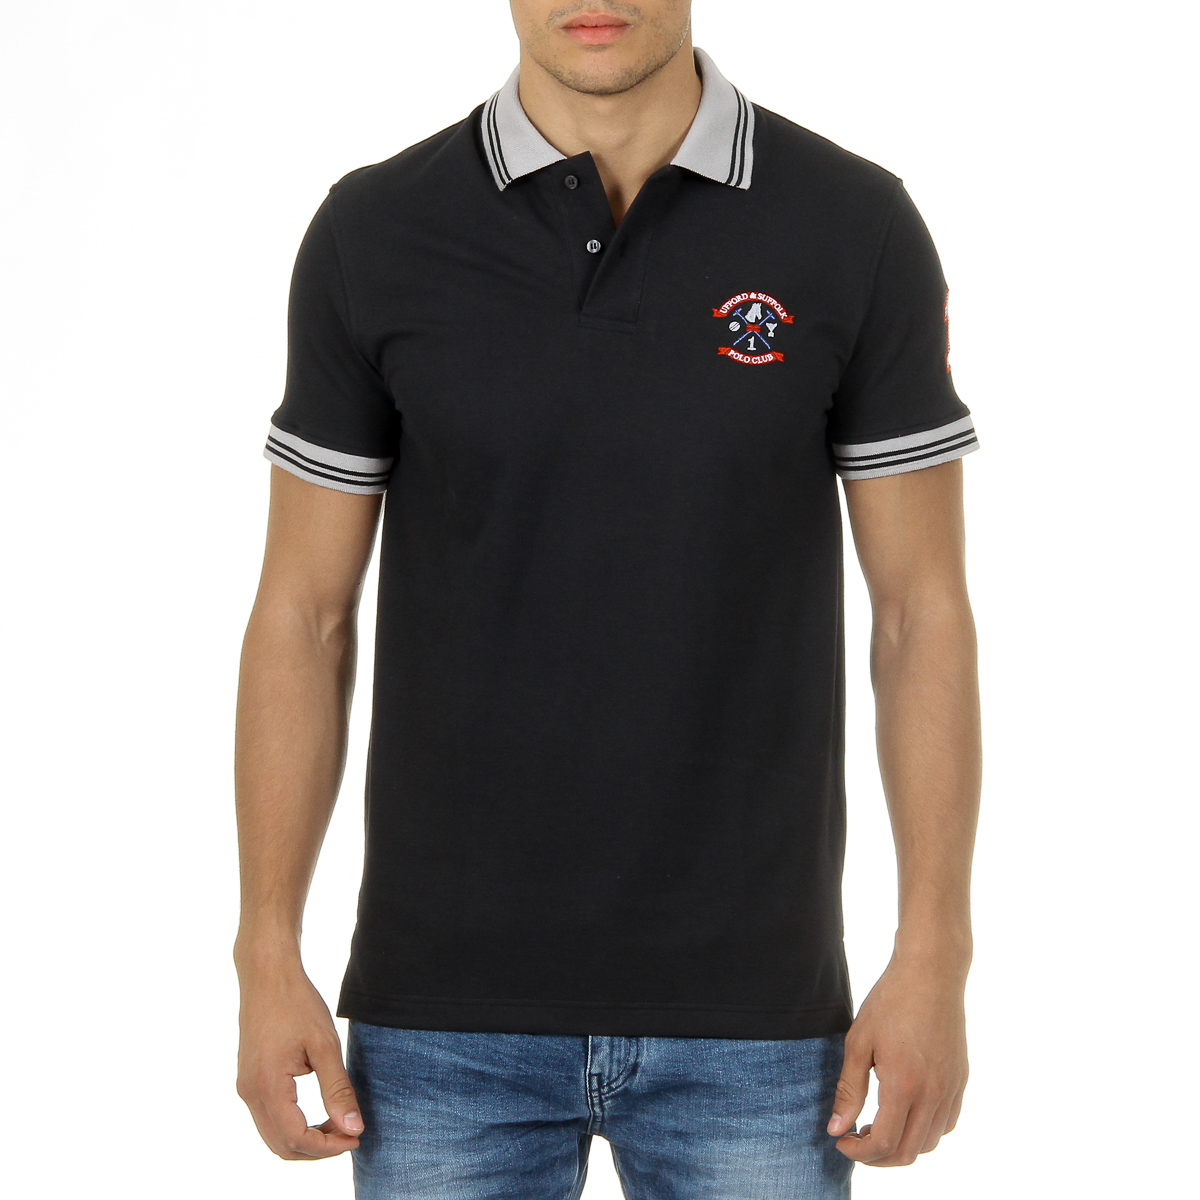 Primary image for Ufford & Suffolk Polo Club Mens Polo Short Sleeves Black ENIGMA